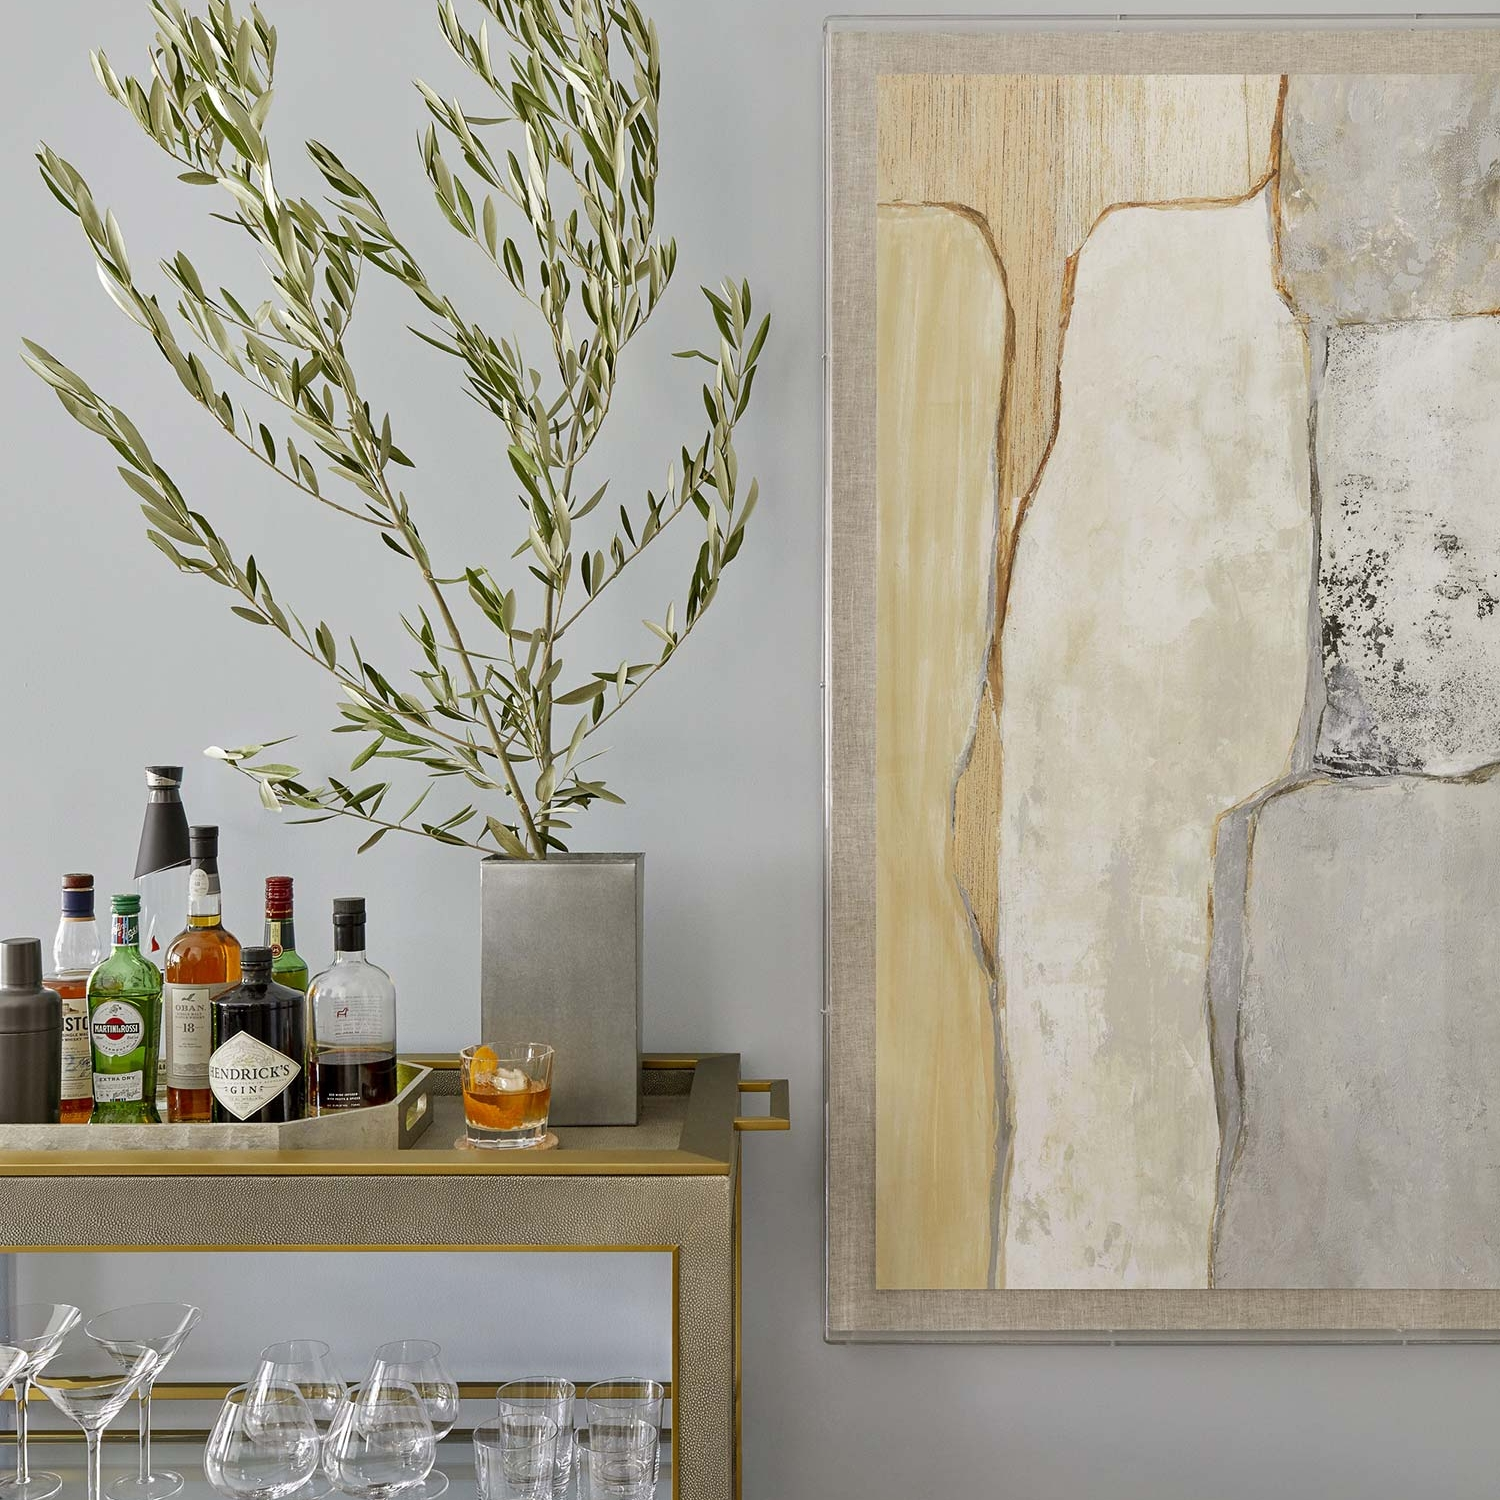 Classy bar cart and a large artwork in a NYC apartment design project by Darci Hether New York